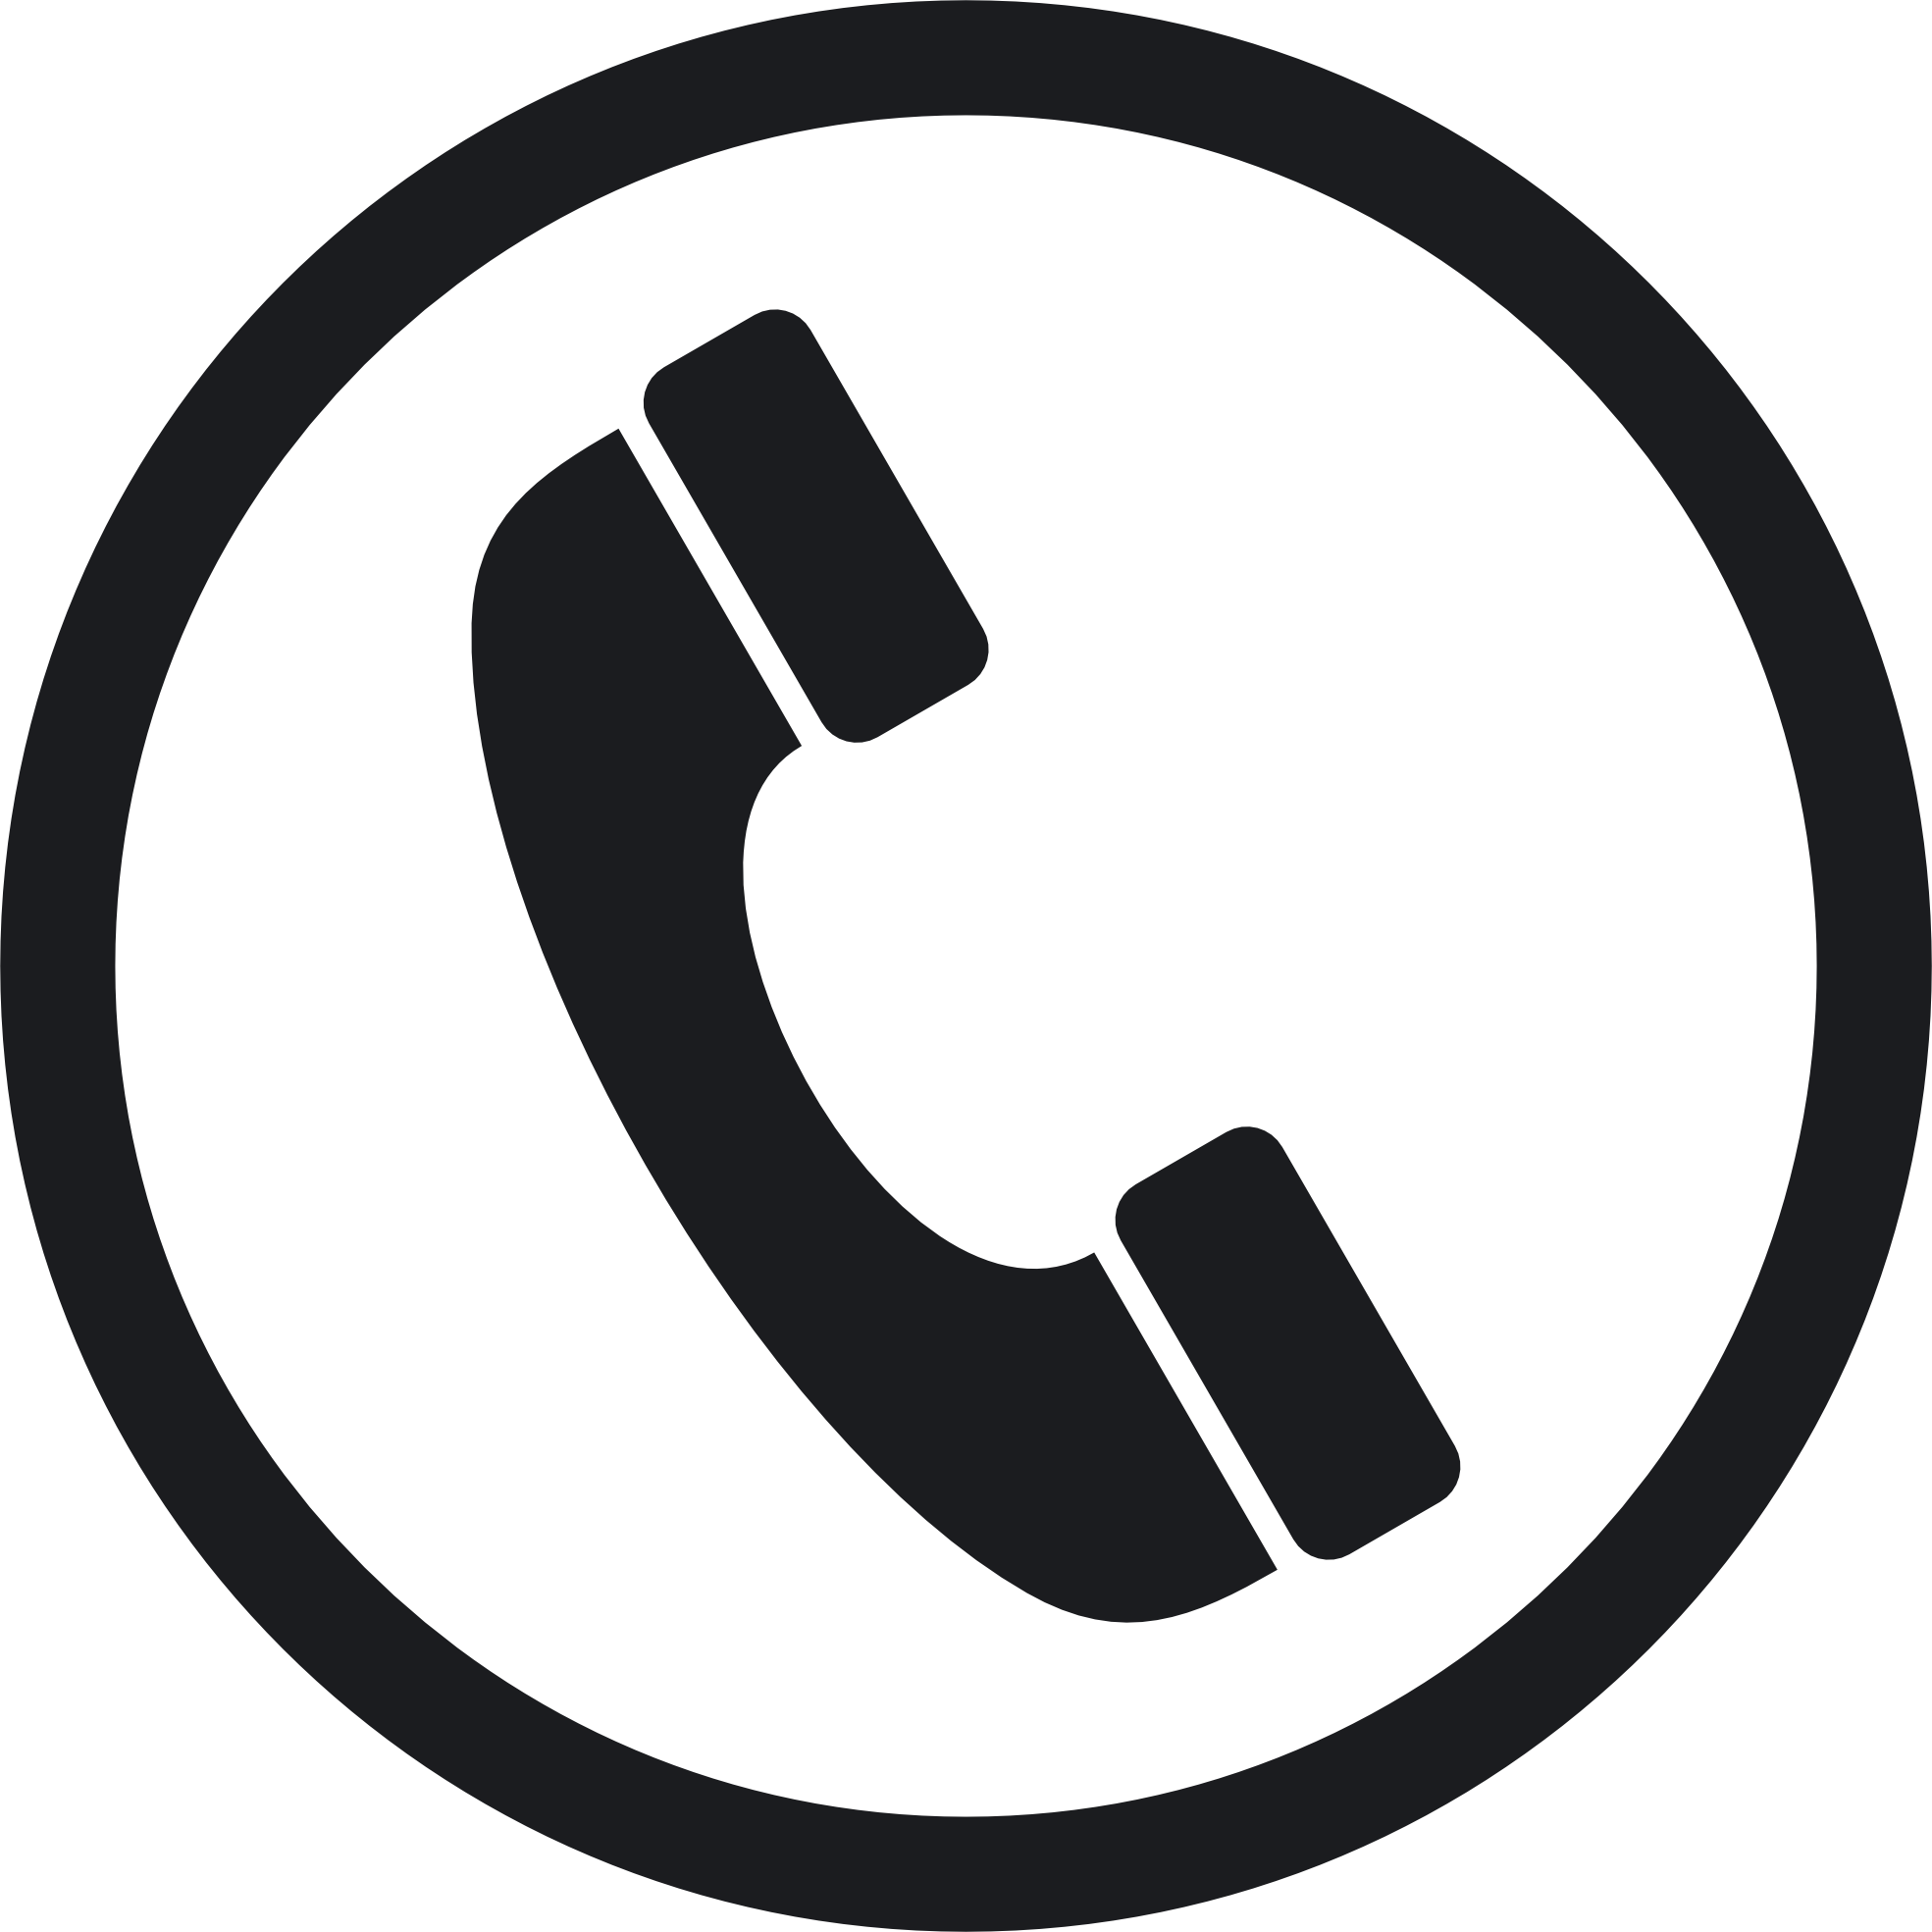 Phone png transparent images. White clipart telephone